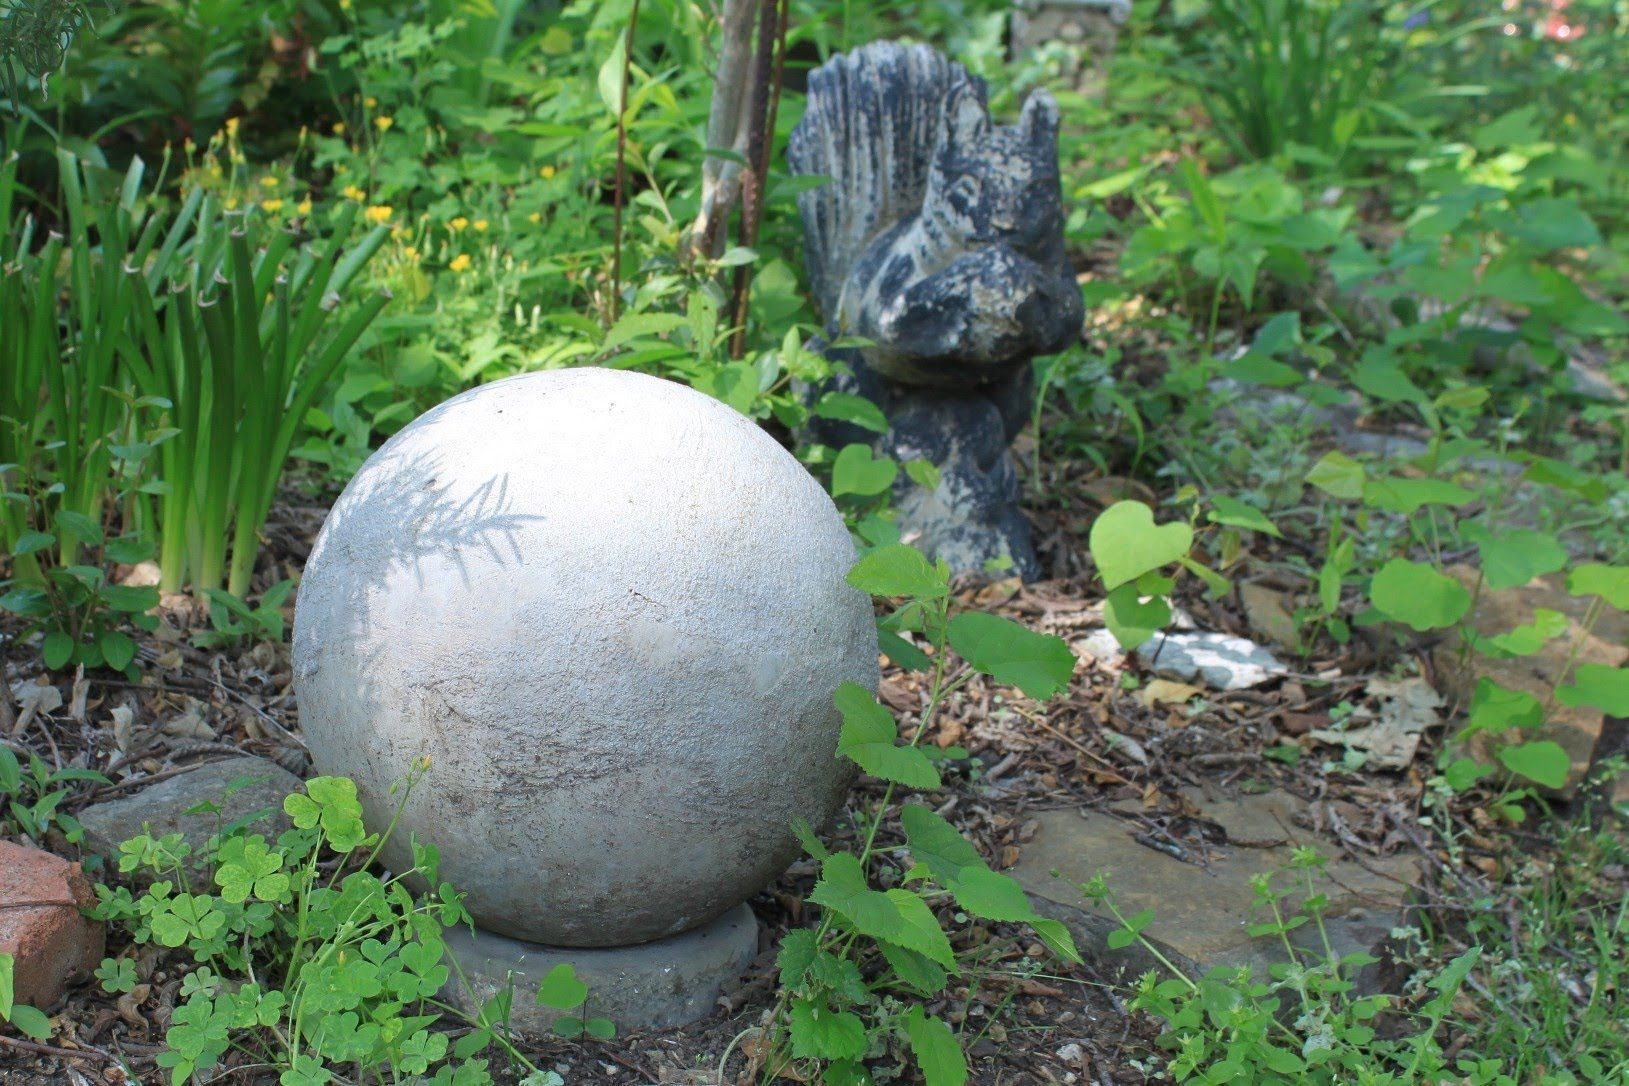 Diy garden ideas pinterest  Simple tutorial for creating concrete spheres  Terraced Garden